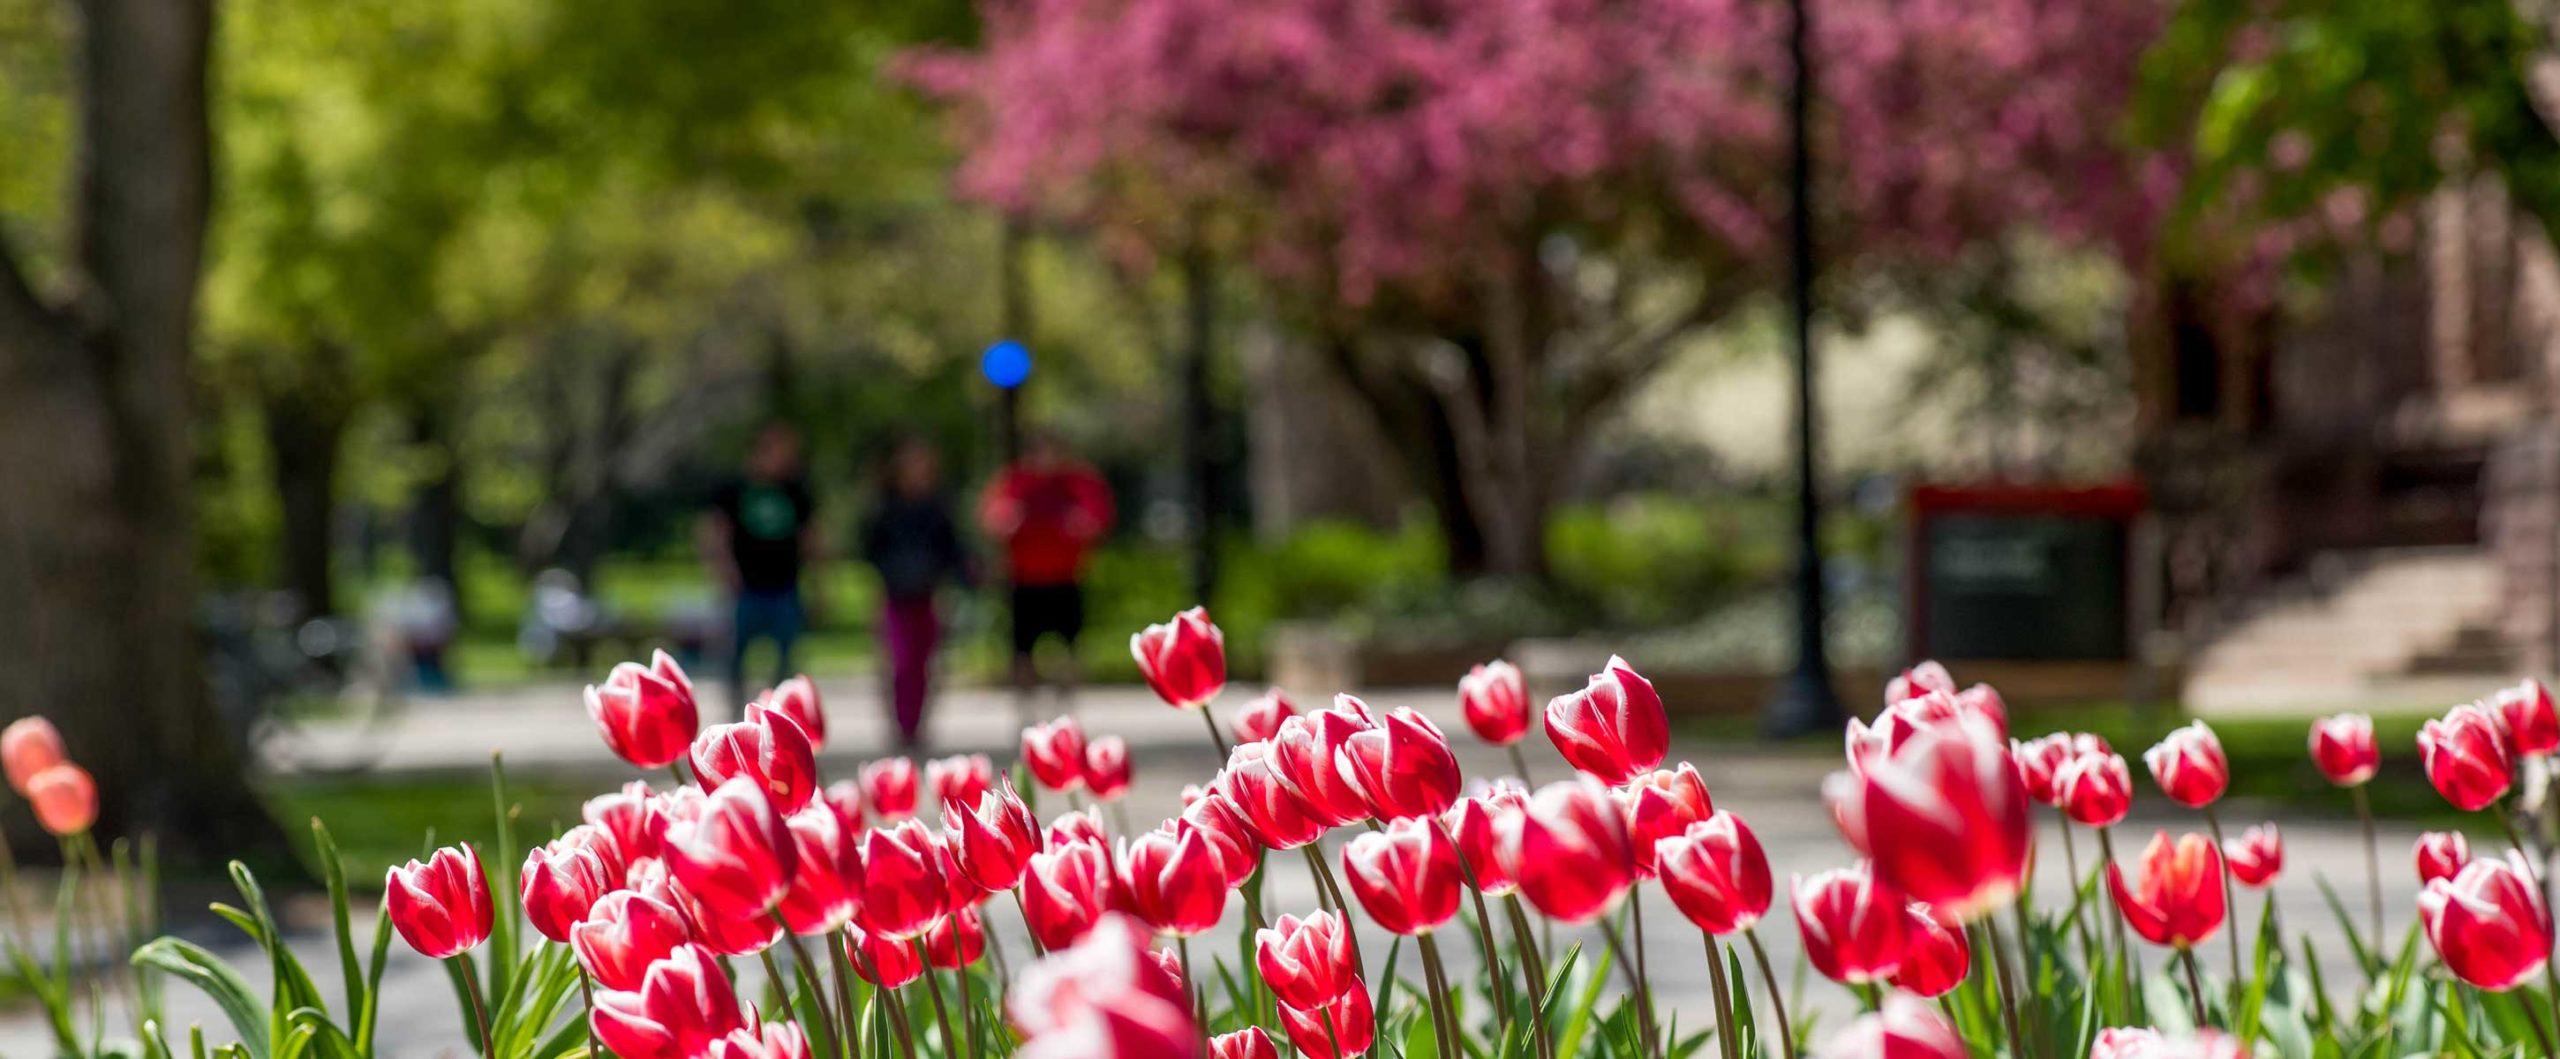 red tulips blooming on the oval